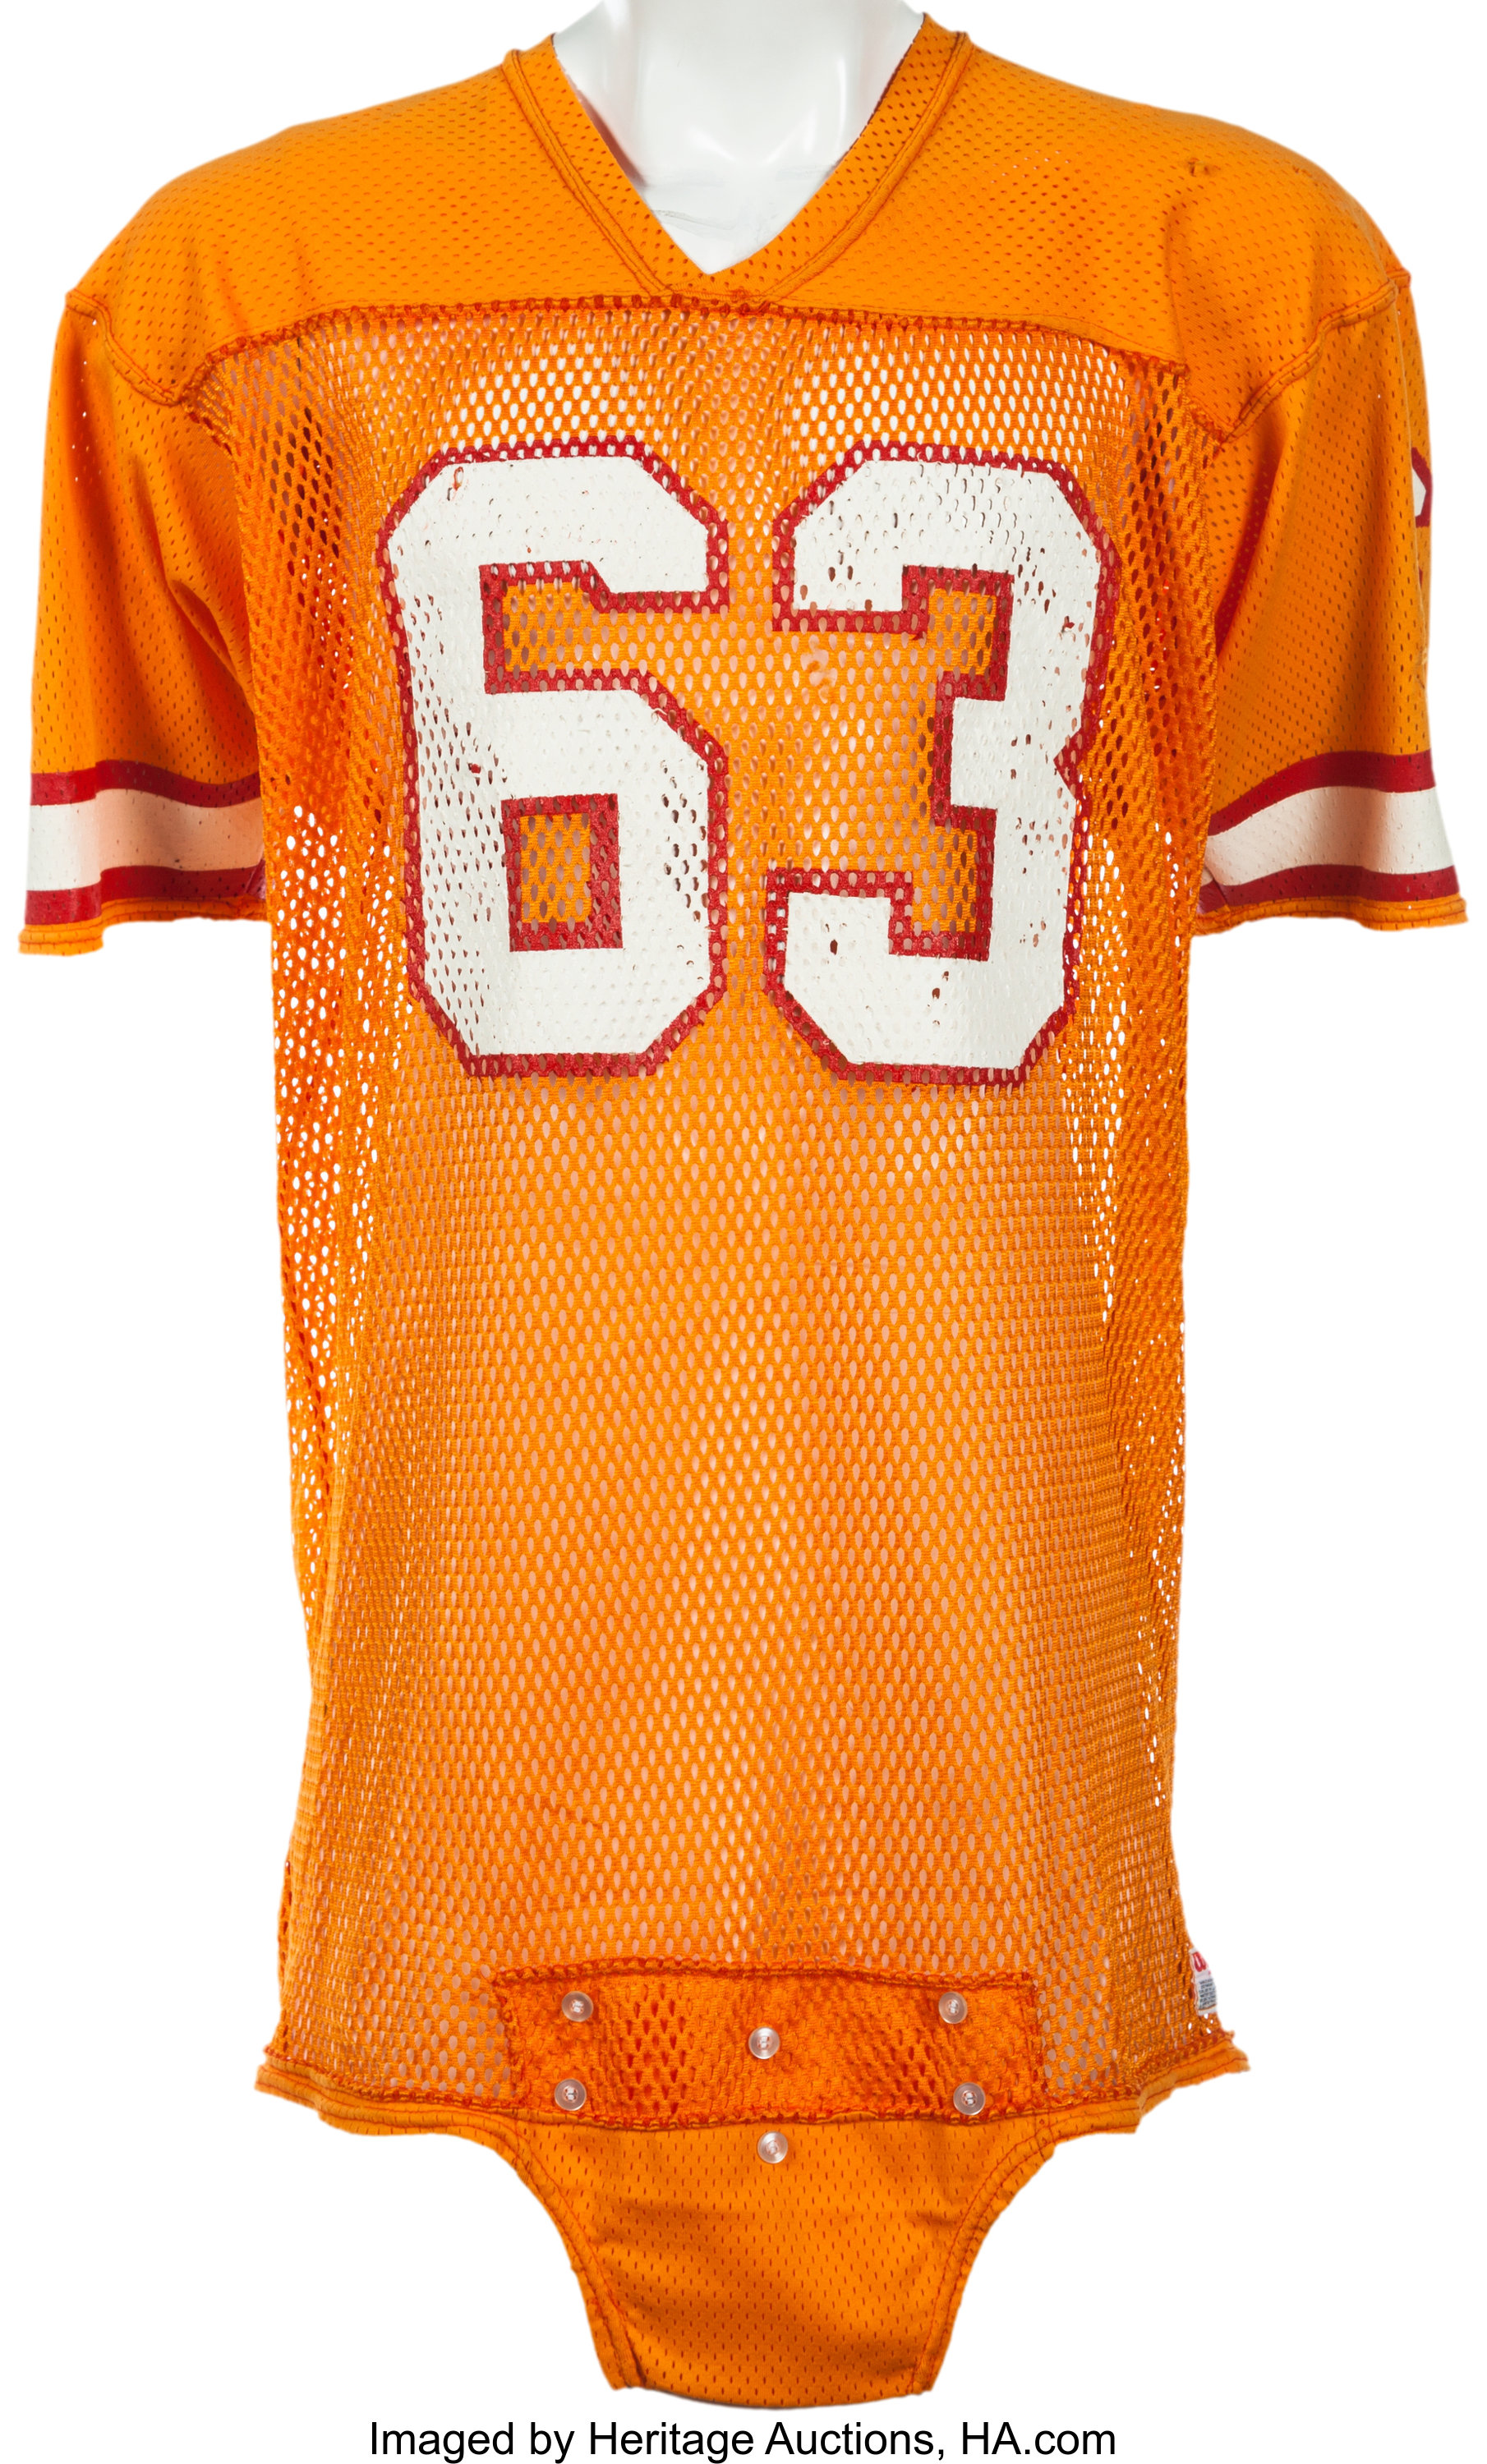 The Best Buccaneers Jersey